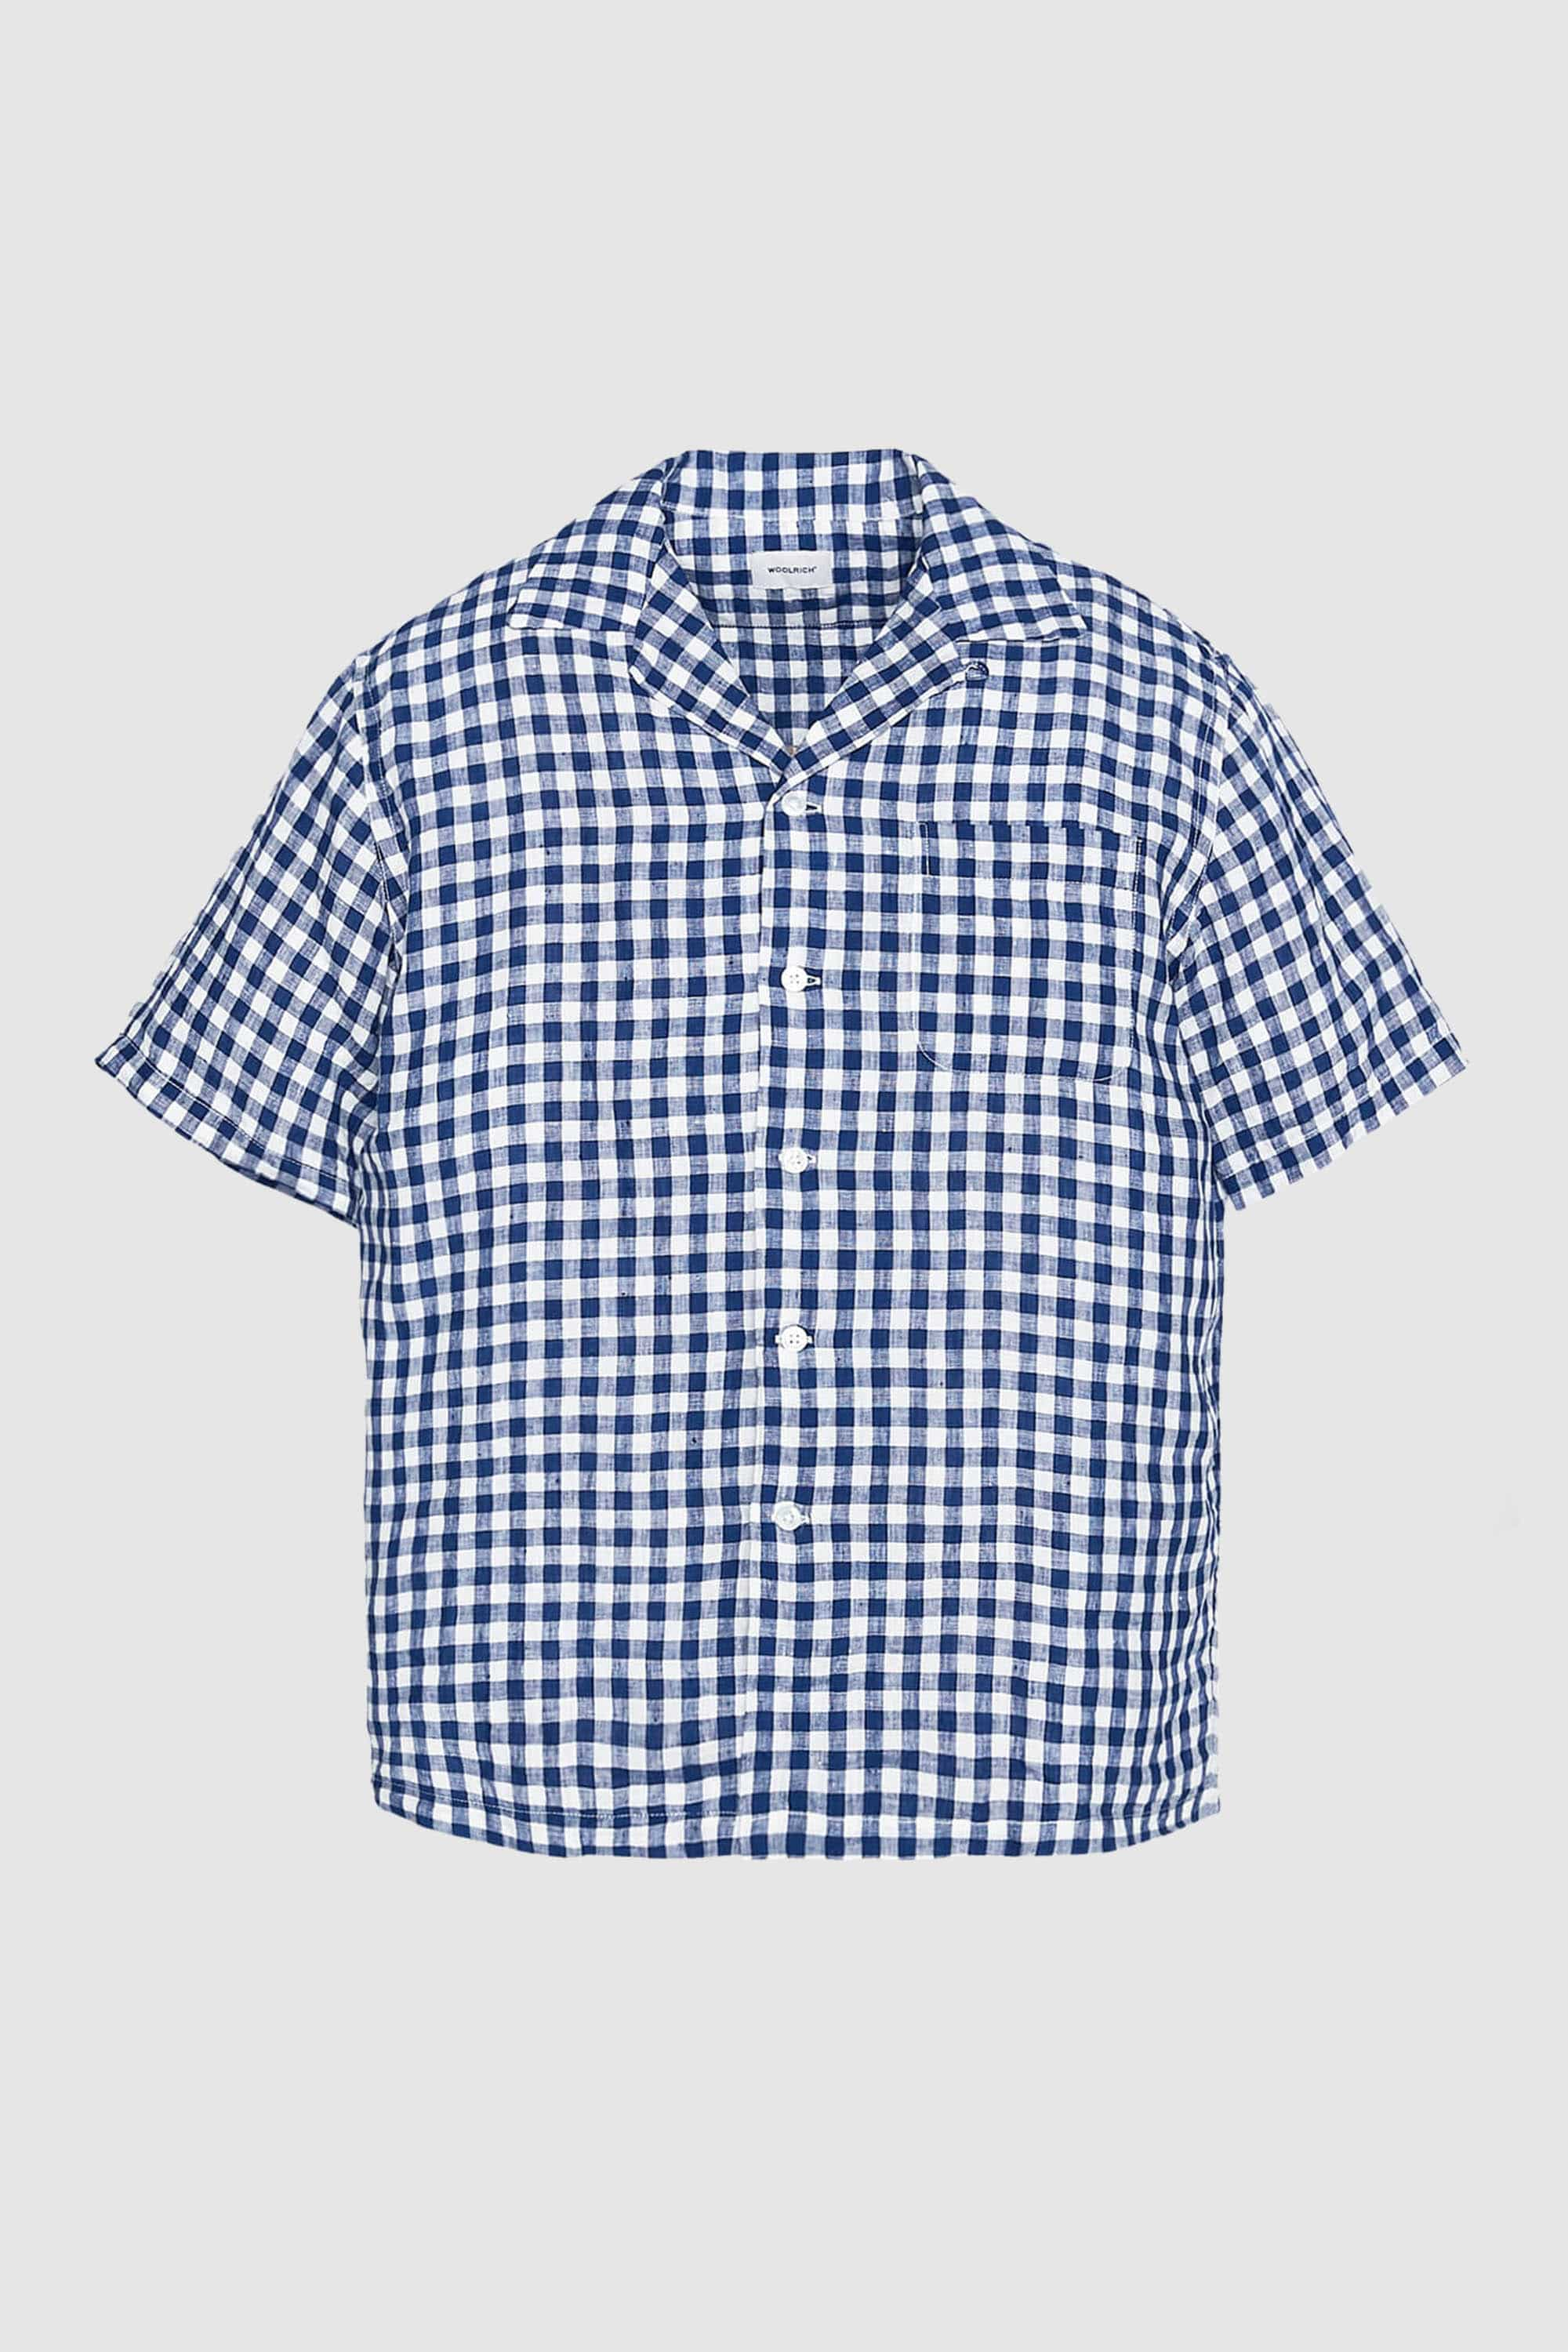 SHORT SLEEVE OPEN COLLAR SHIRTS